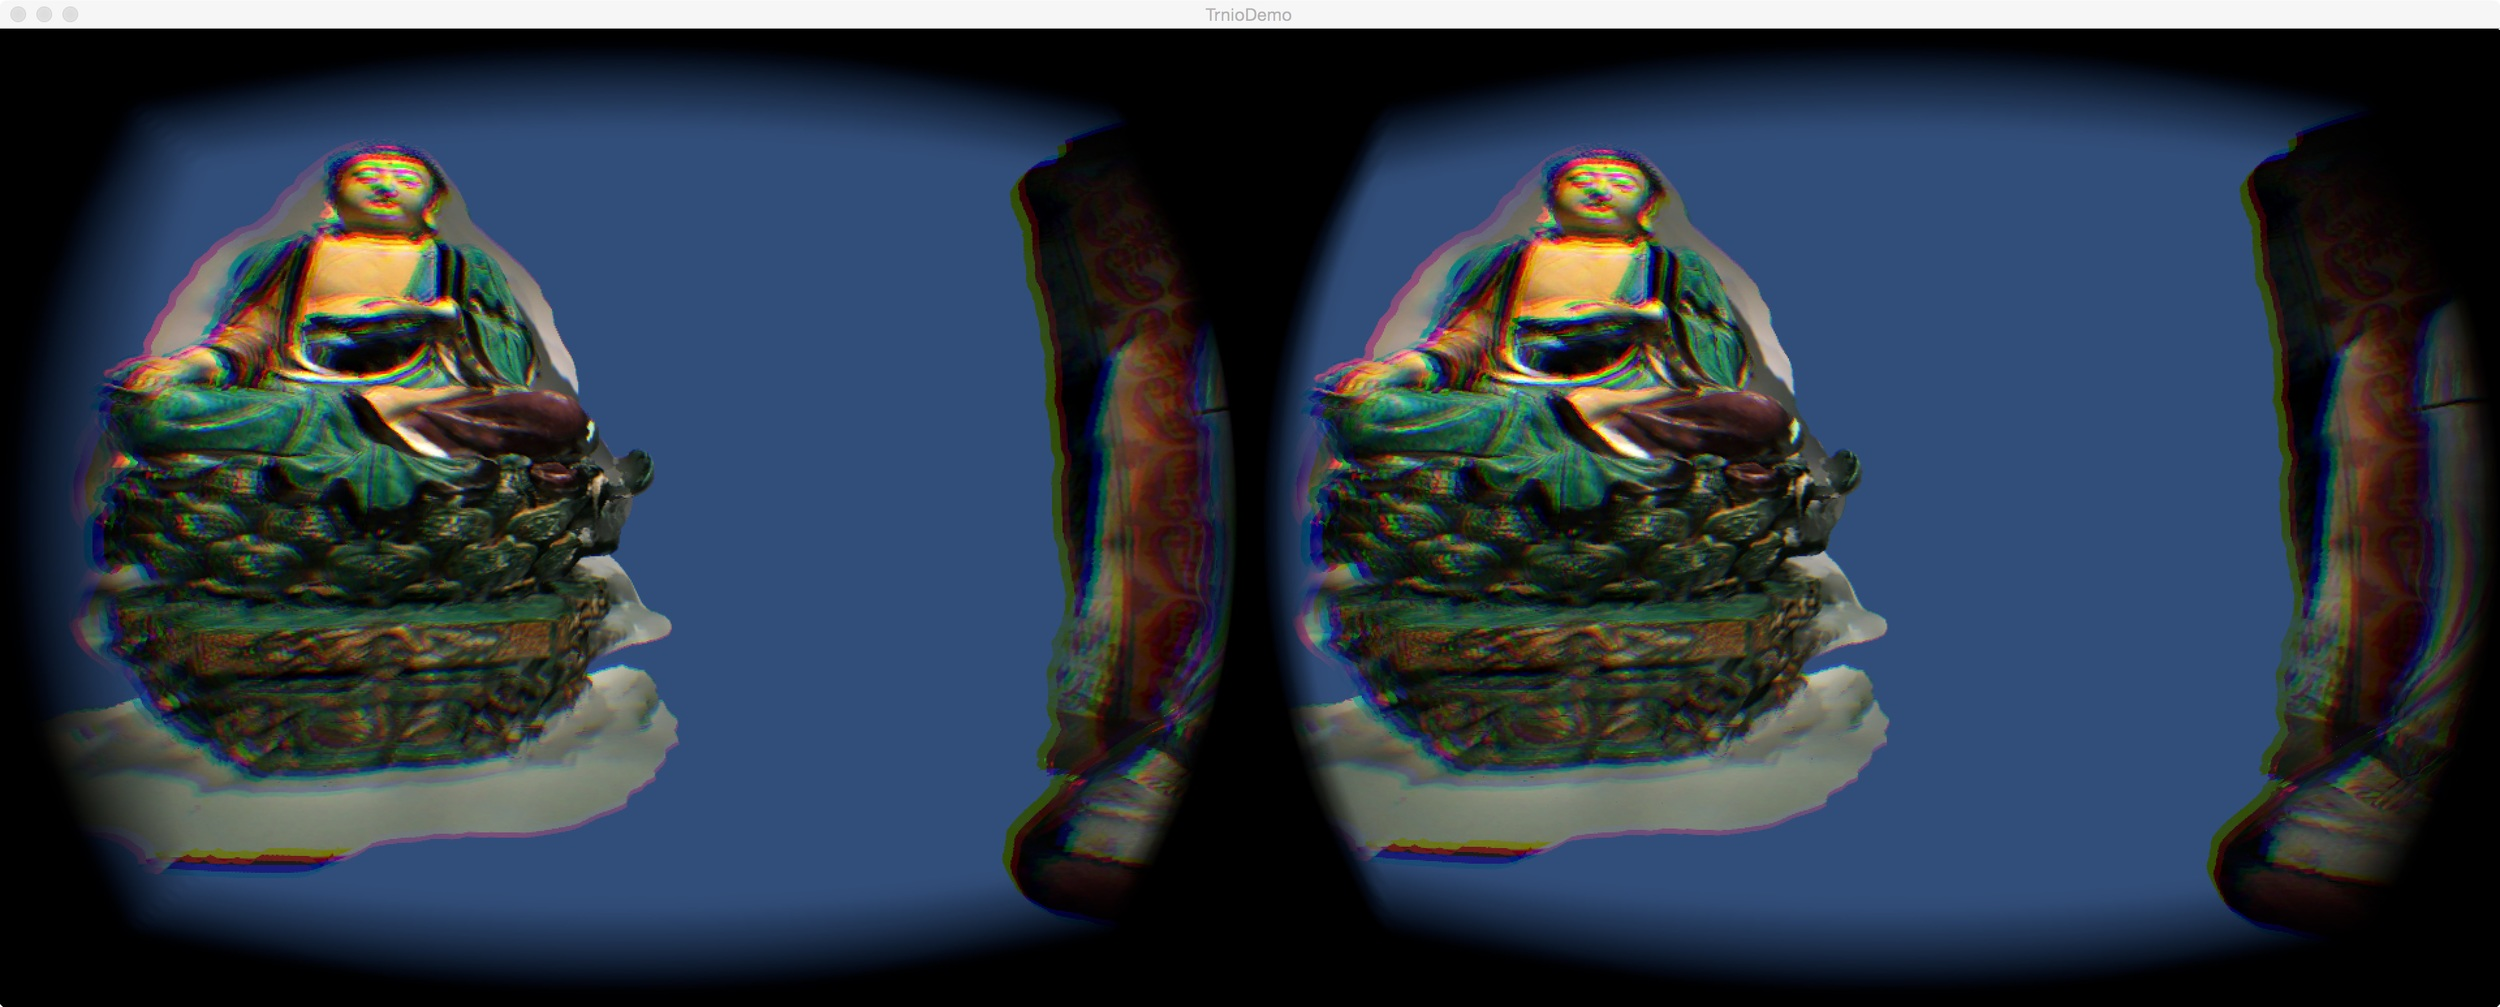 Stereoscopic view of the Trnio demo - looks better with the Oculus